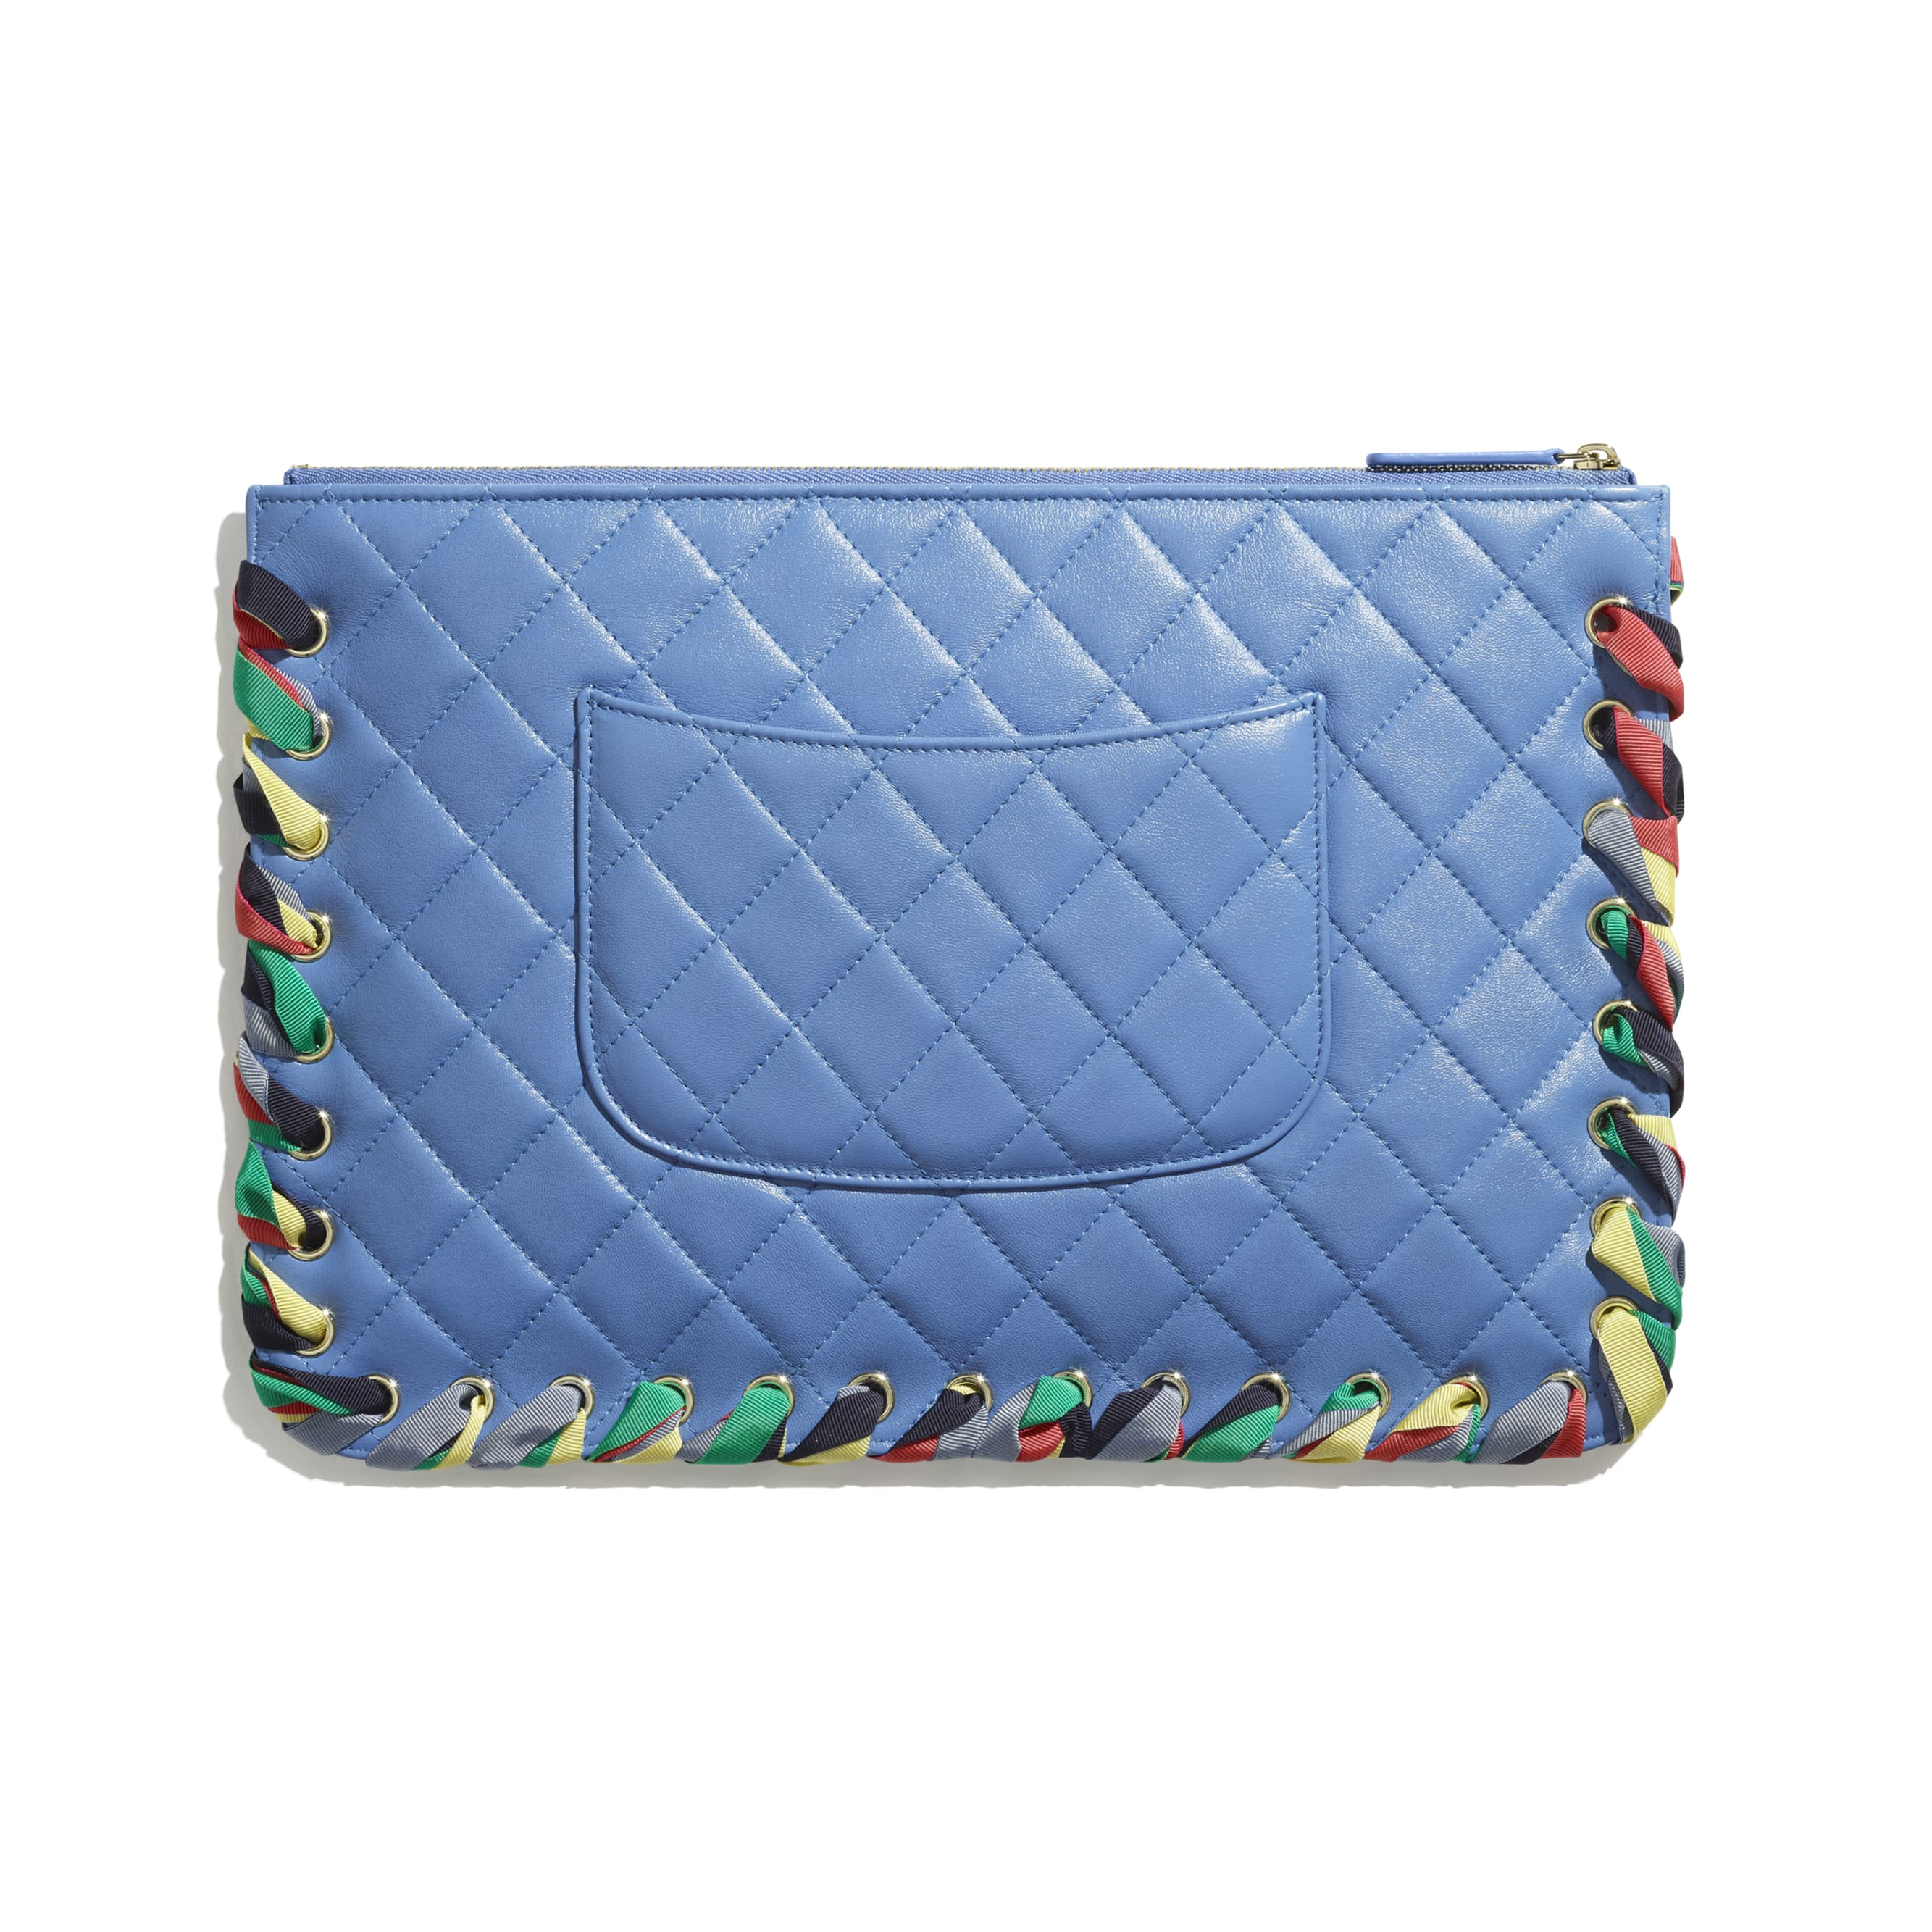 Pouch - Blue - Shiny Lambskin, Ribbon & Gold-Tone Metal - CHANEL - Alternative view - see standard sized version